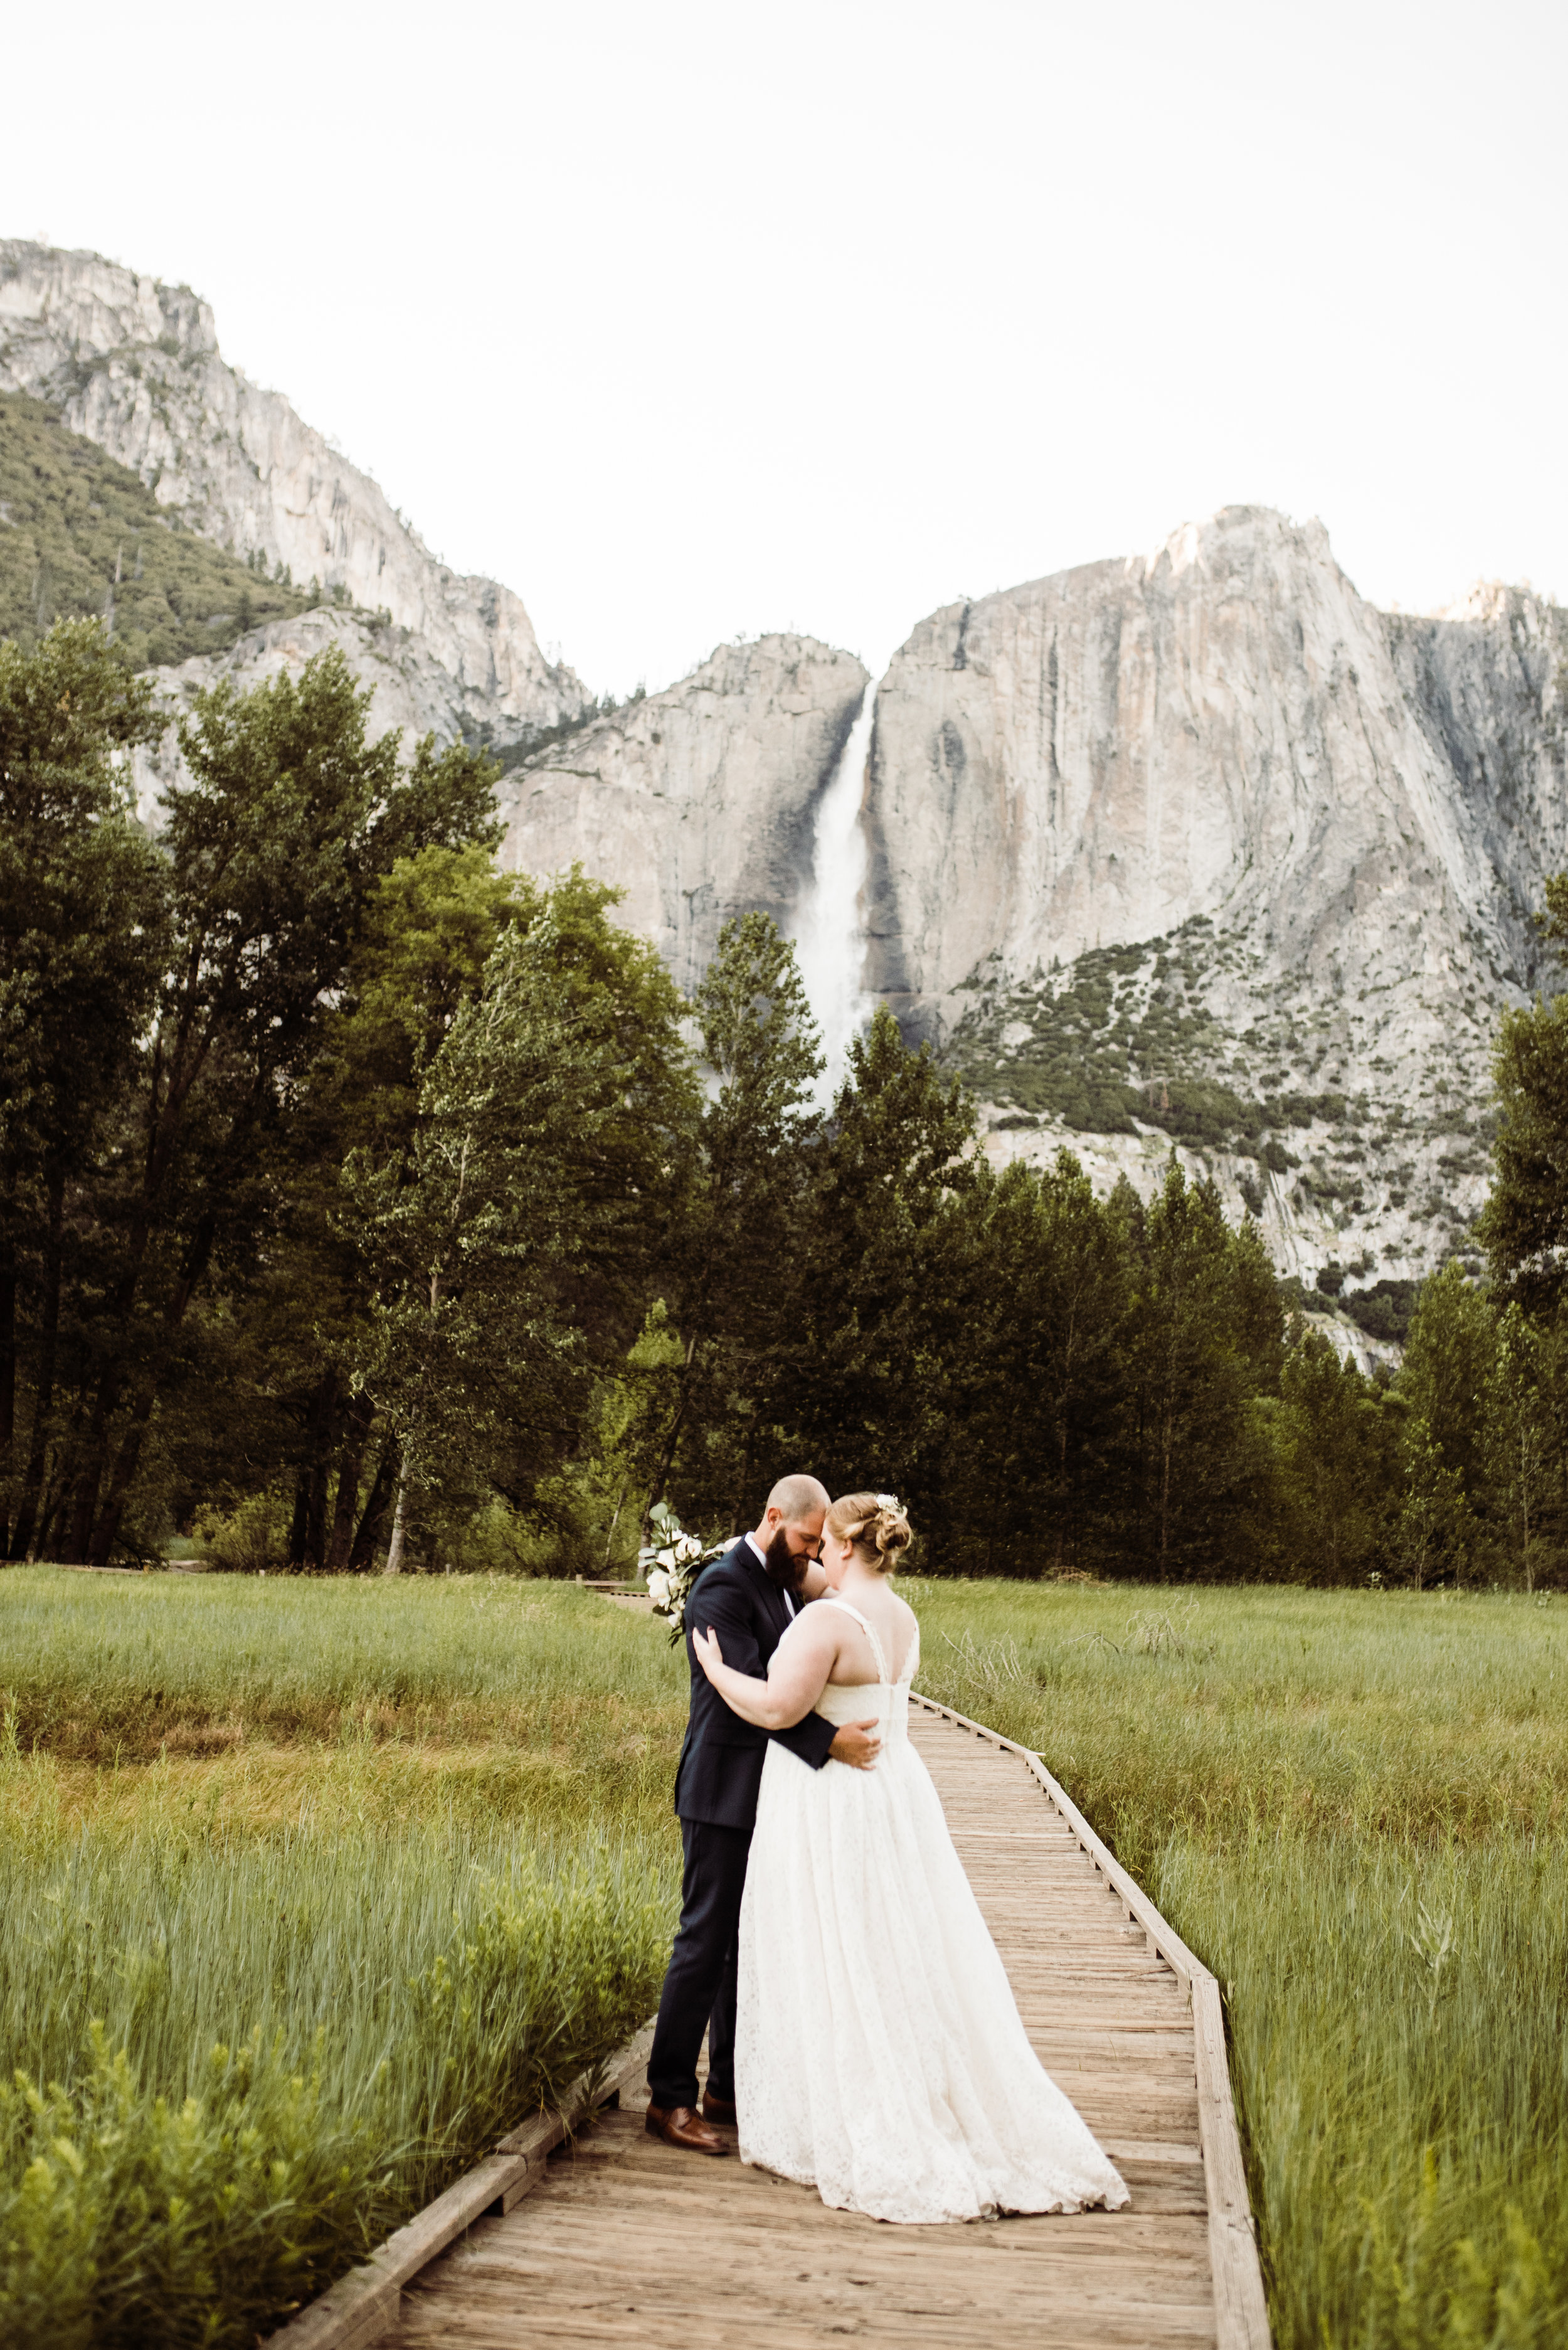 Couple's first dance in Yosemite Valley after their Glacier Point Wedding Ceremony